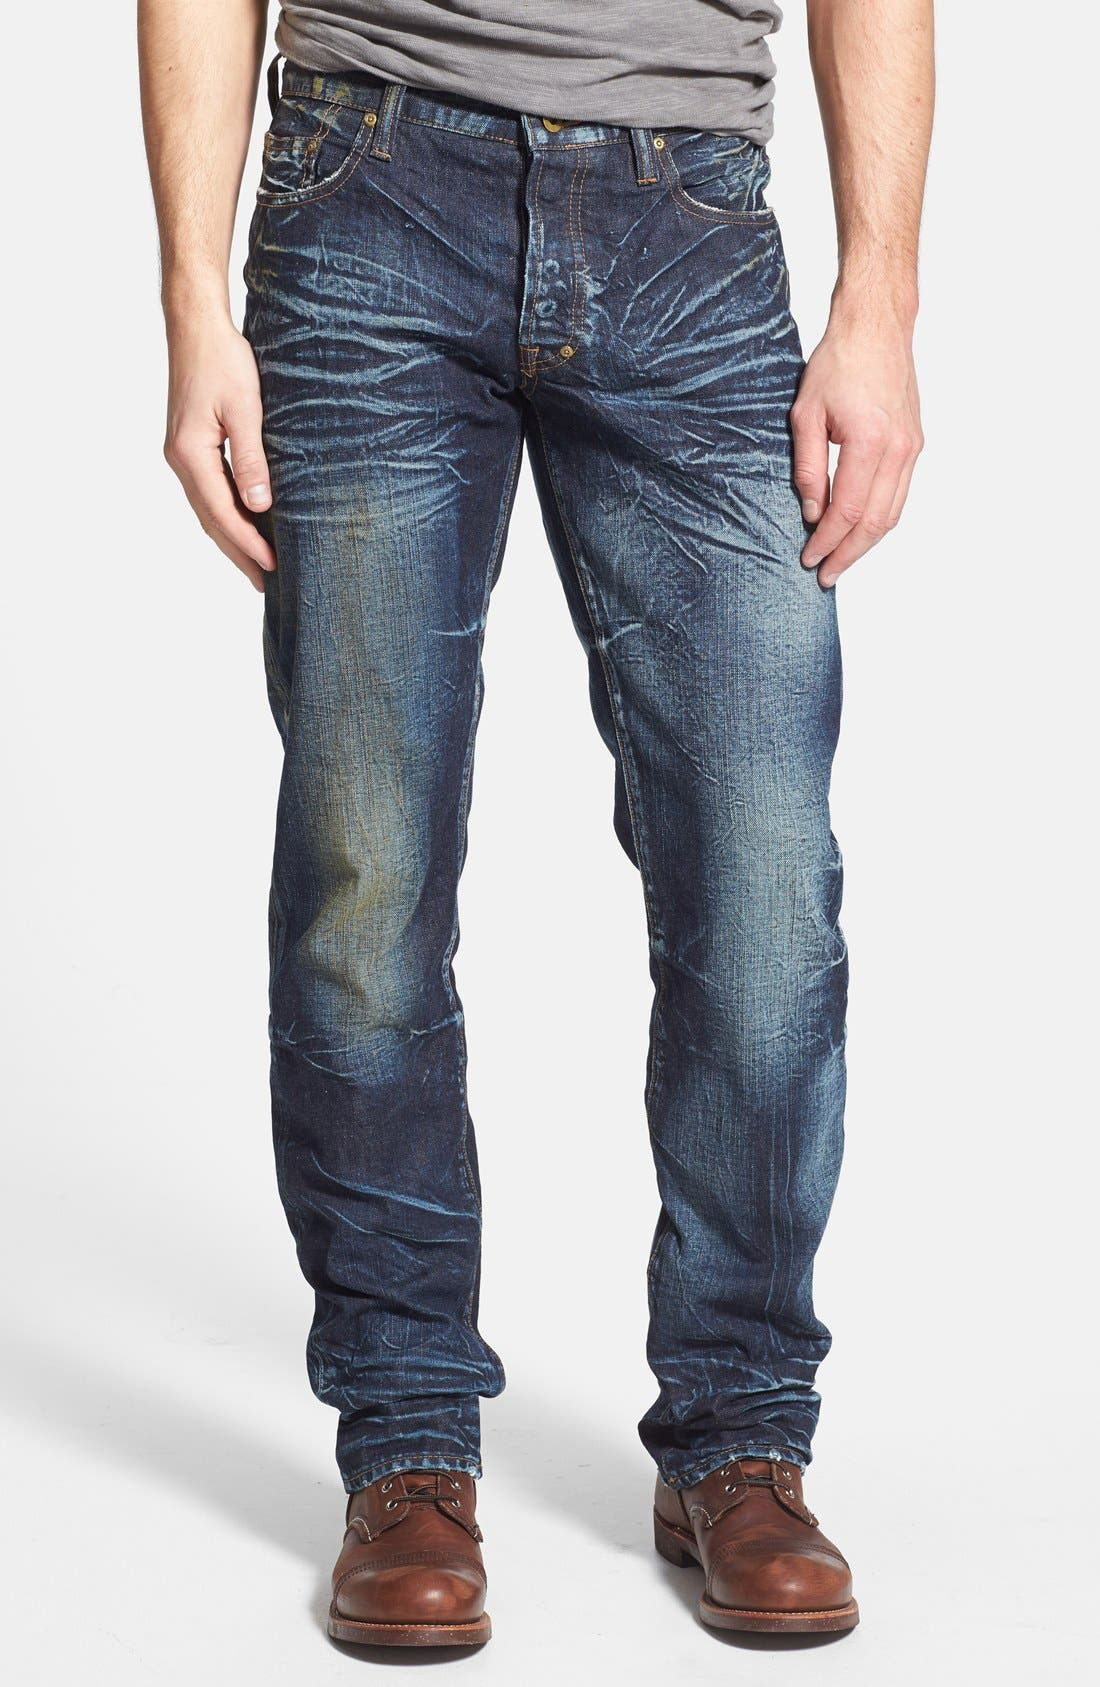 Alternate Image 1 Selected - PRPS 'Barracuda' Distressed Straight Leg Jeans (Winged Bat)